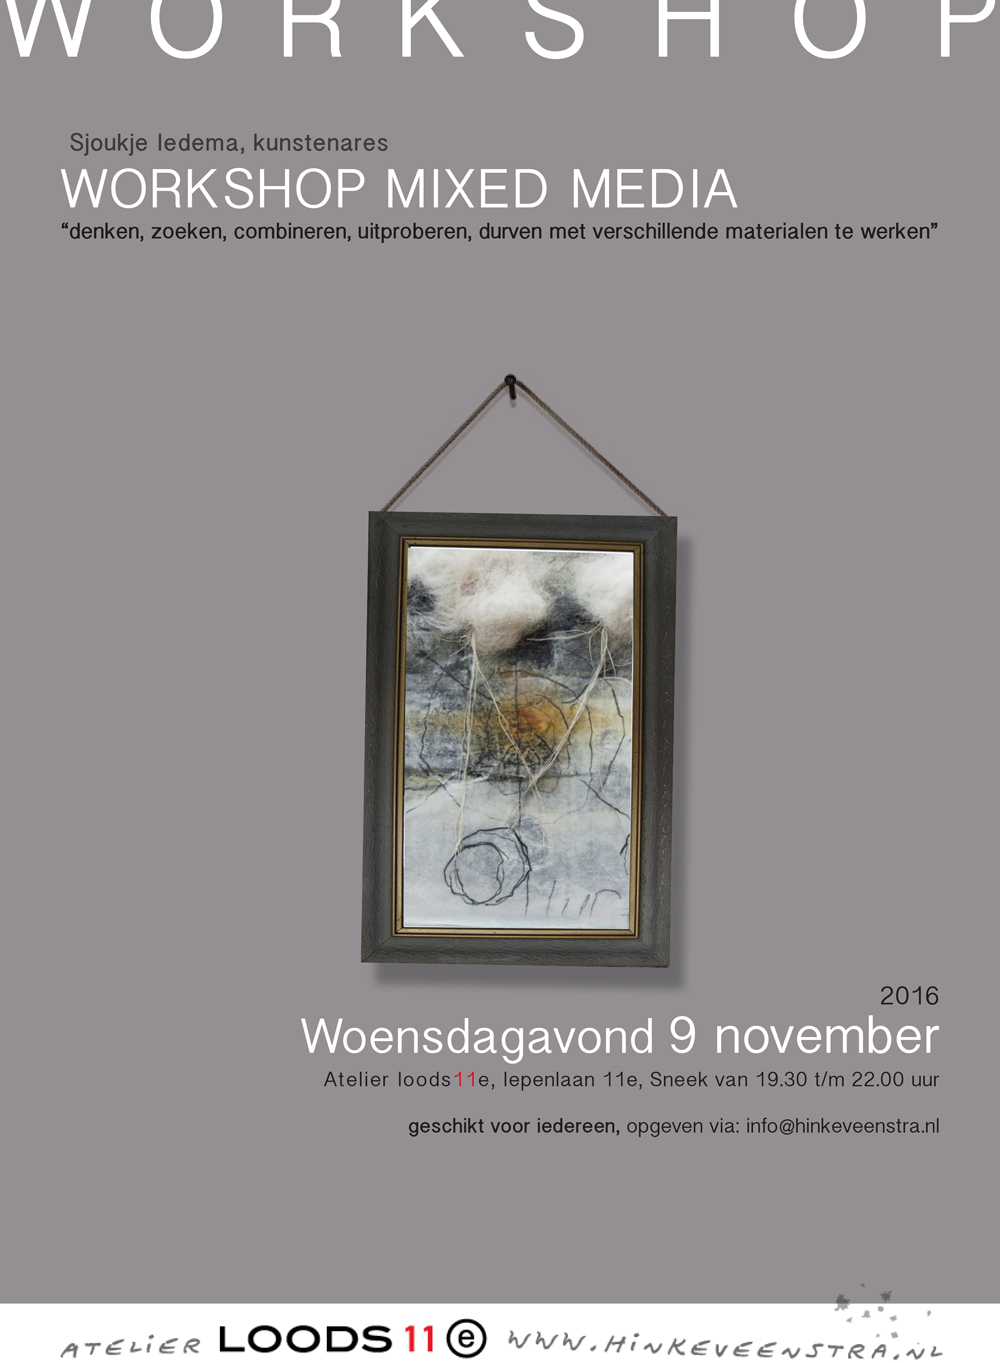 poster-workshop-iepenlaan-11e-,4